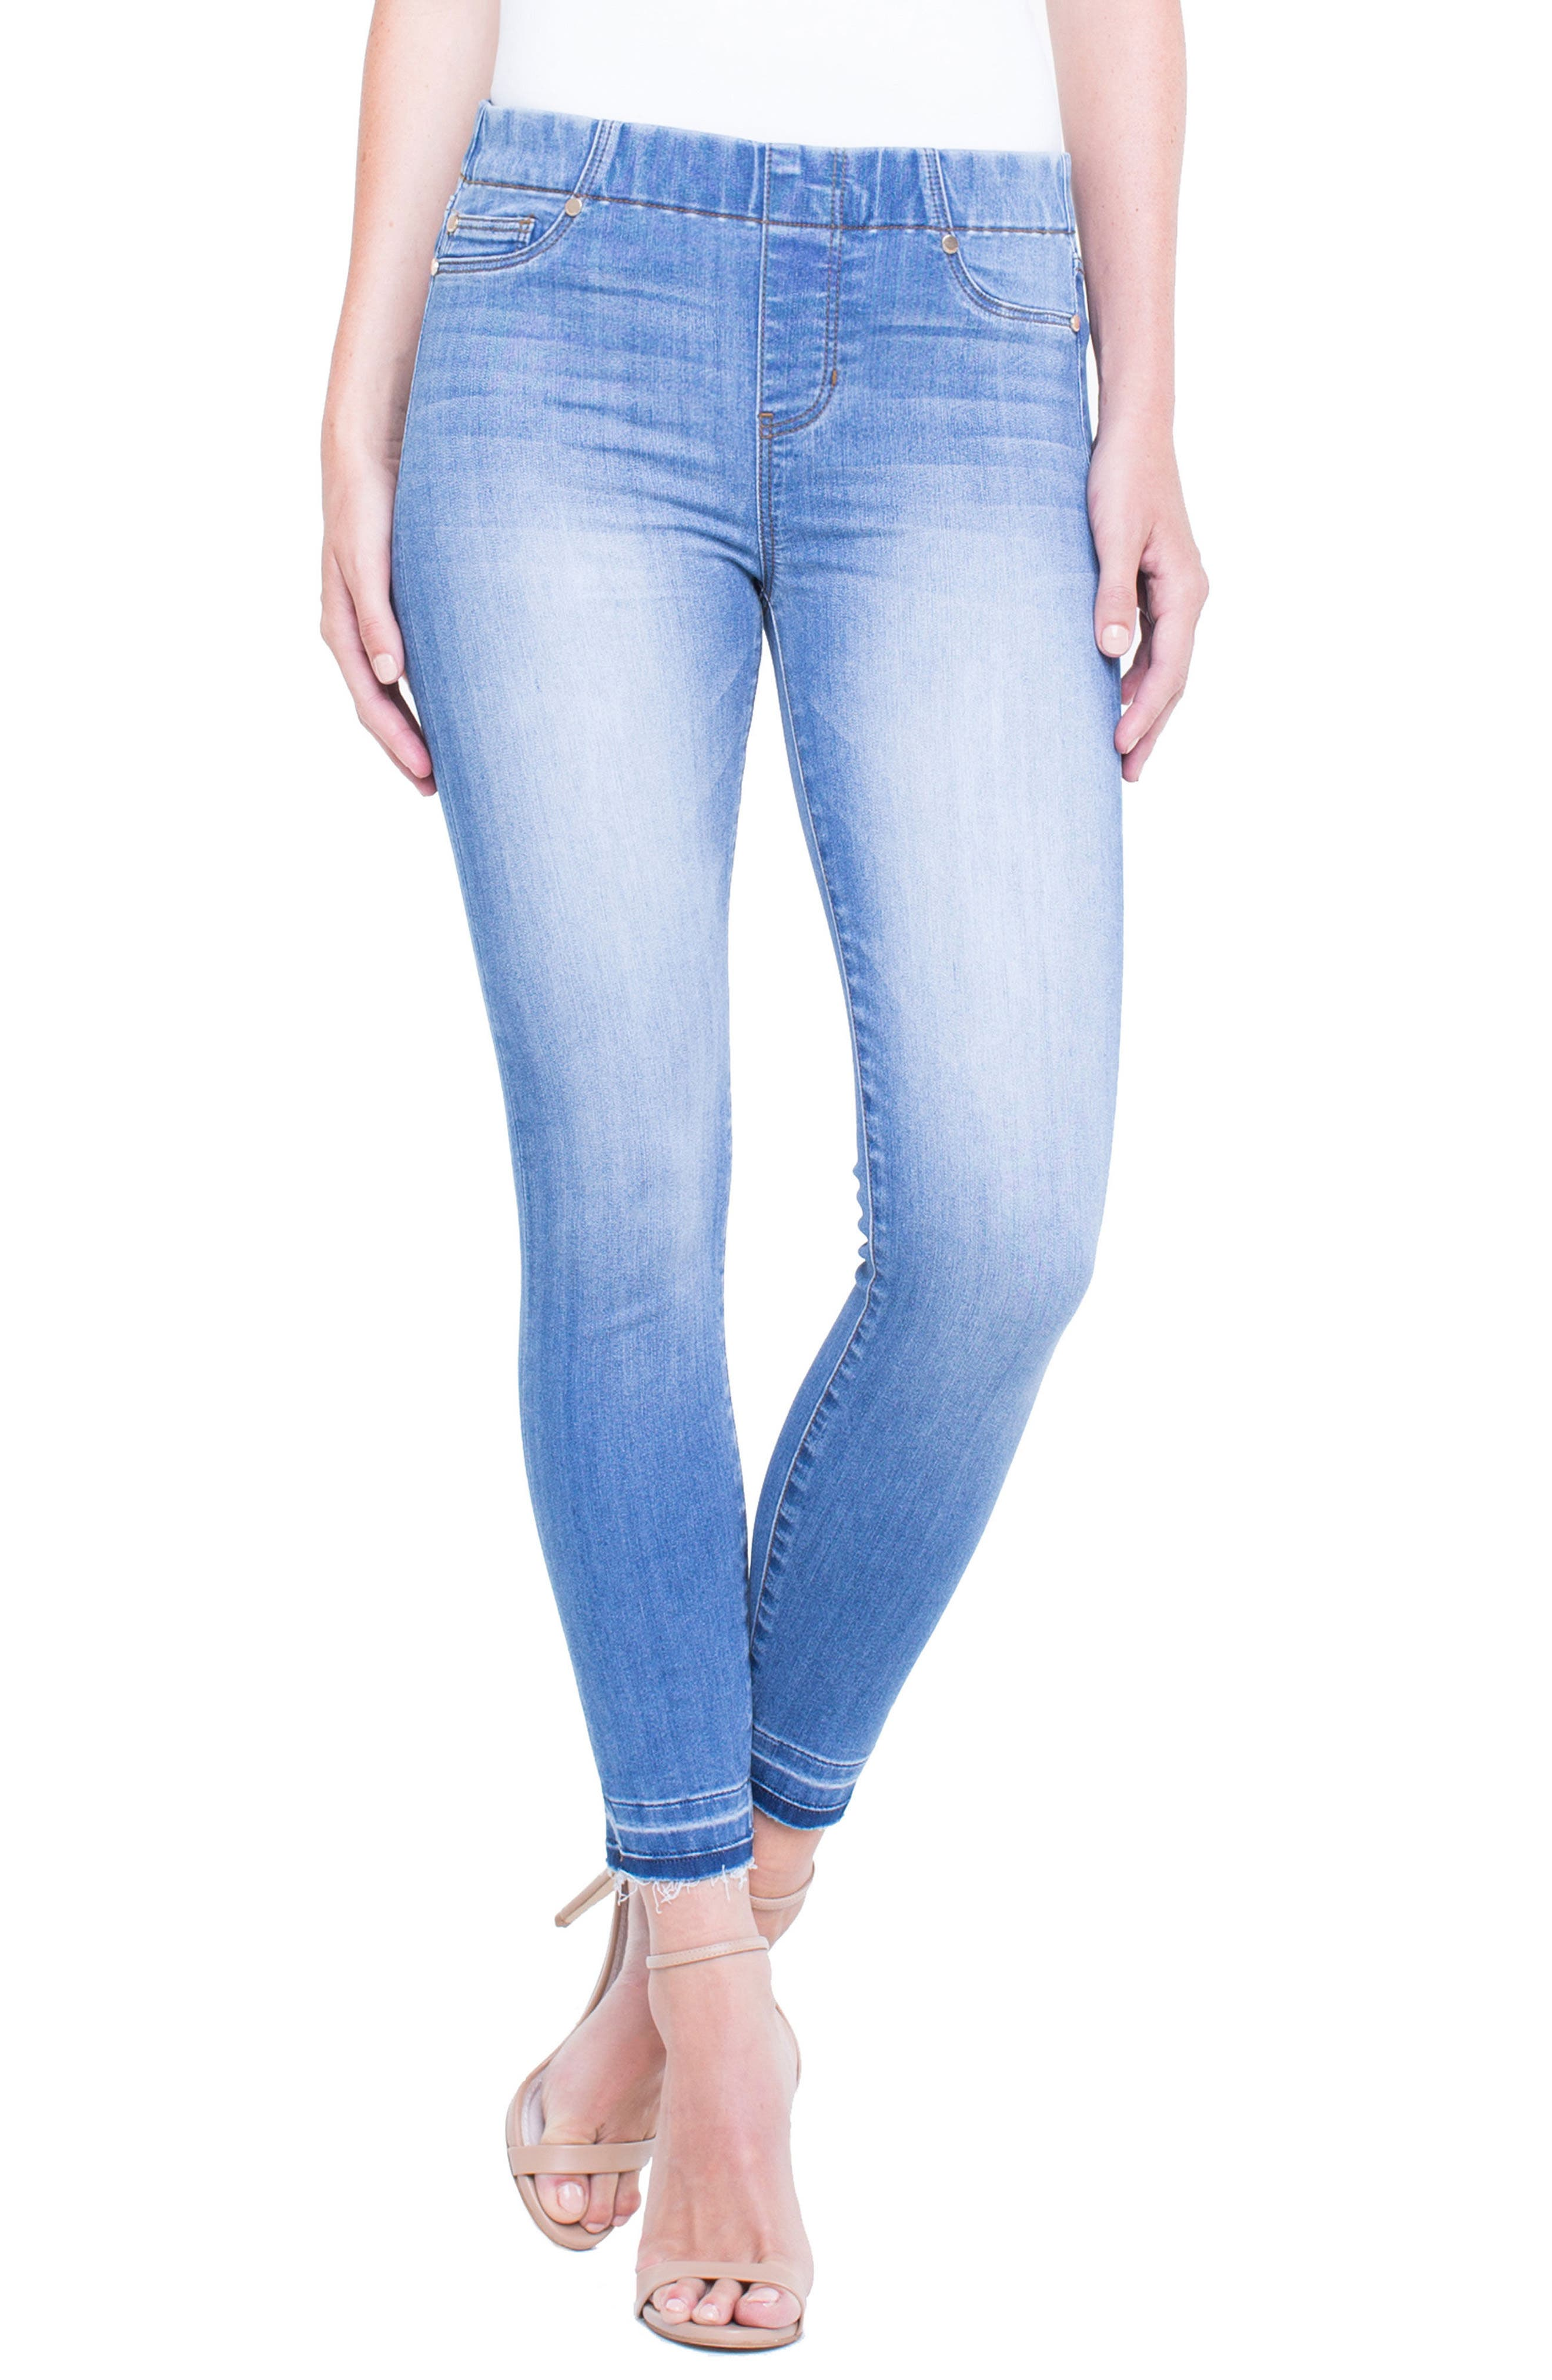 Chloe Release Hem Denim Leggings,                         Main,                         color, RIDGEWAY GRIND